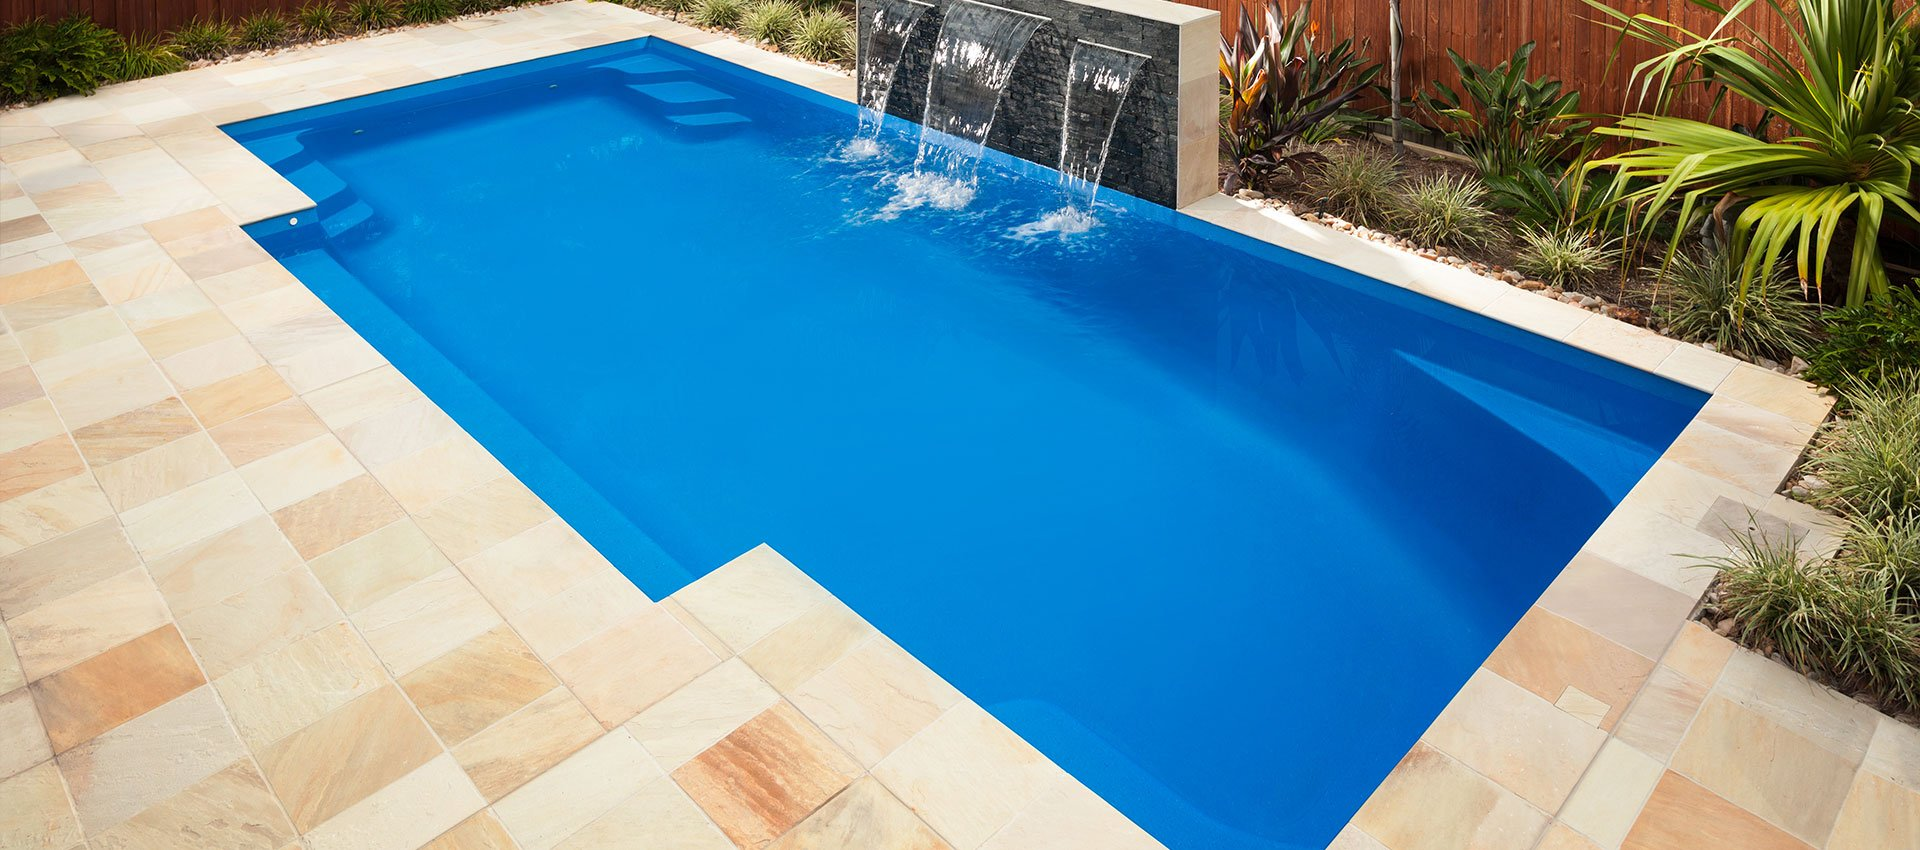 Complete Fibreglass Pool Kits - Hayman Pool Large